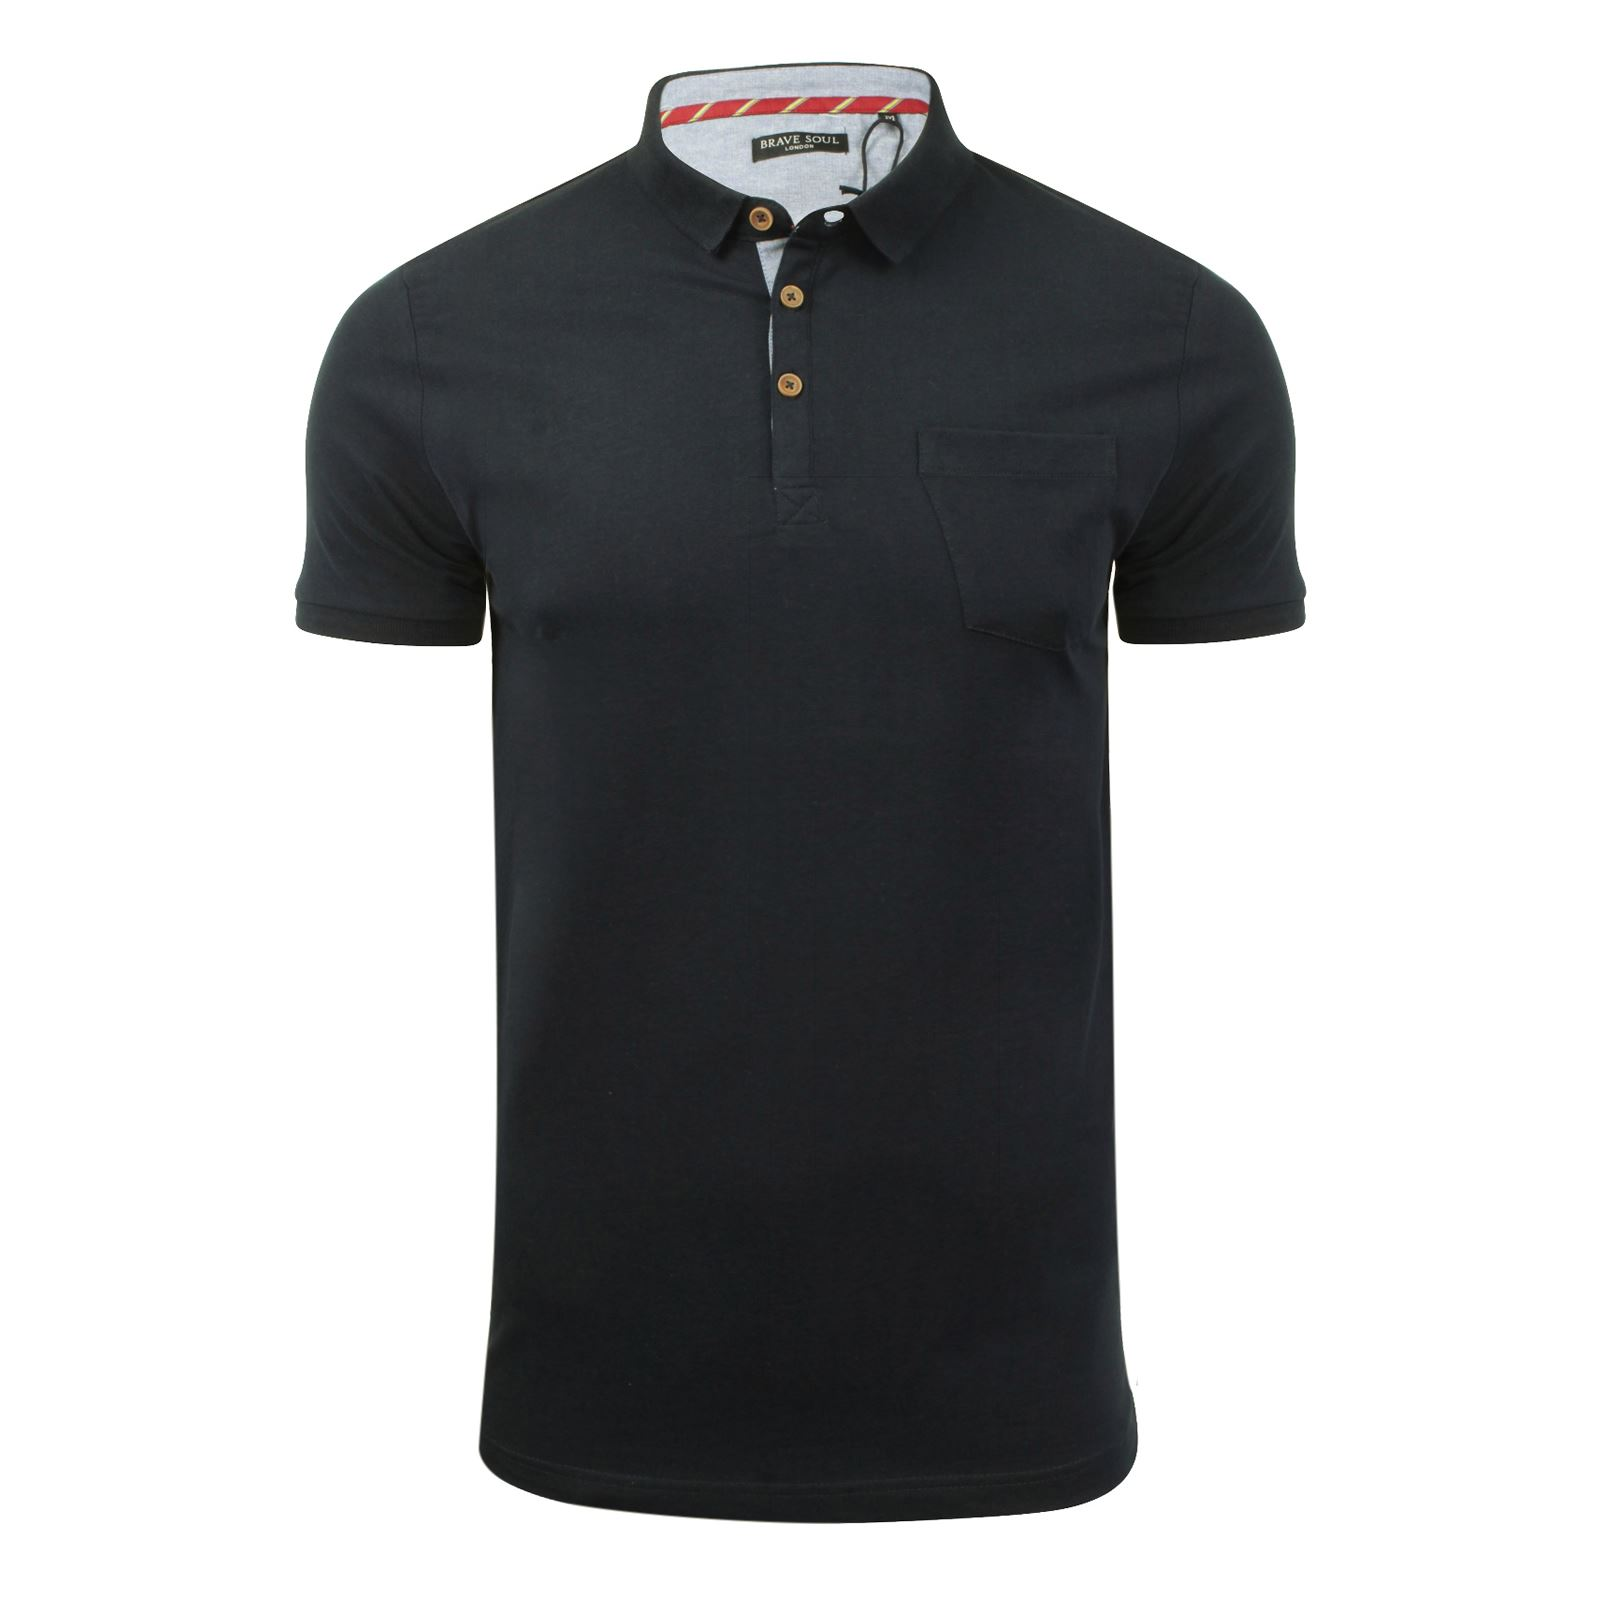 Brave-Soul-Julius-Mens-Polo-T-Shirt-Cotton-Collared-Short-Sleeve-Casual-Top miniature 14